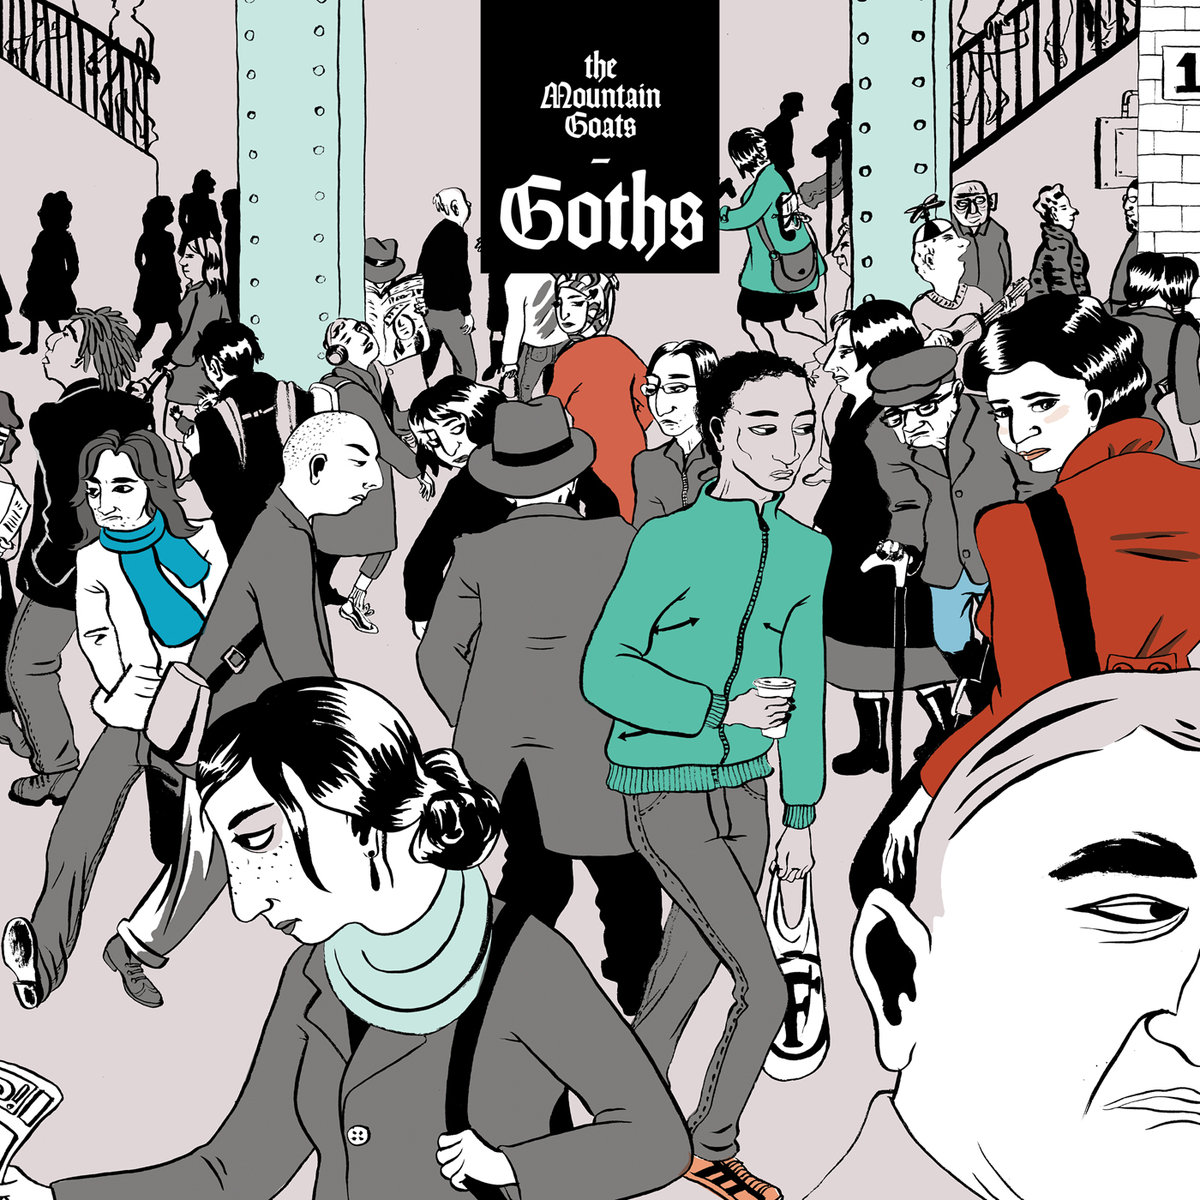 Review of the Mountain Goats' 'Goths'